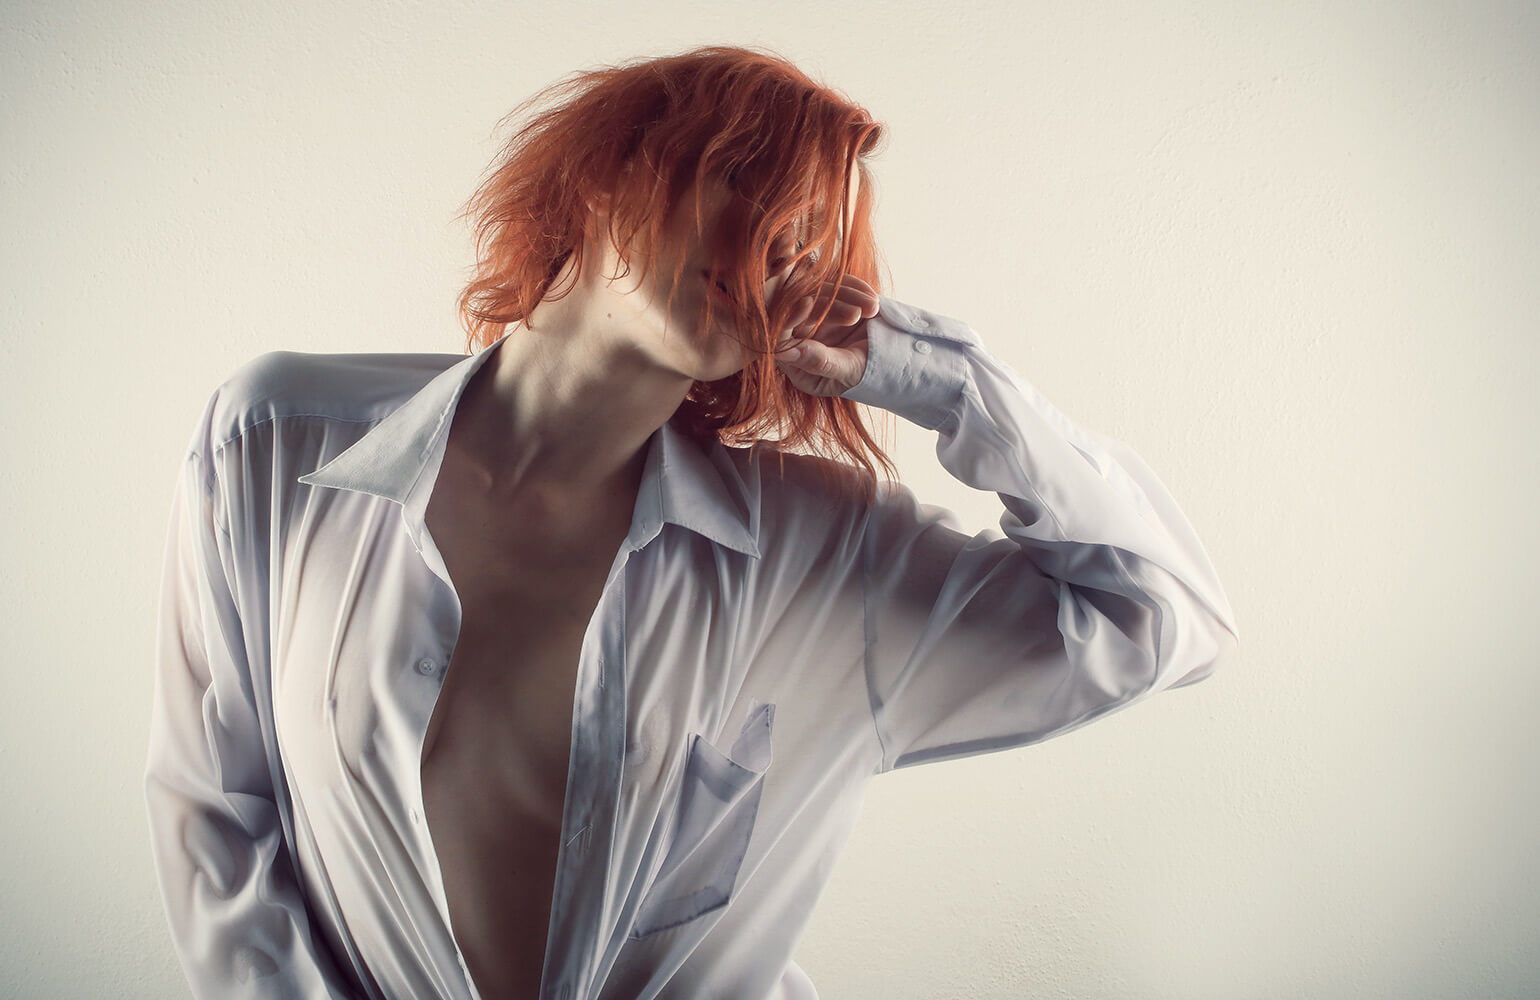 boudoir photo of a woman in a men's shirt on a light background